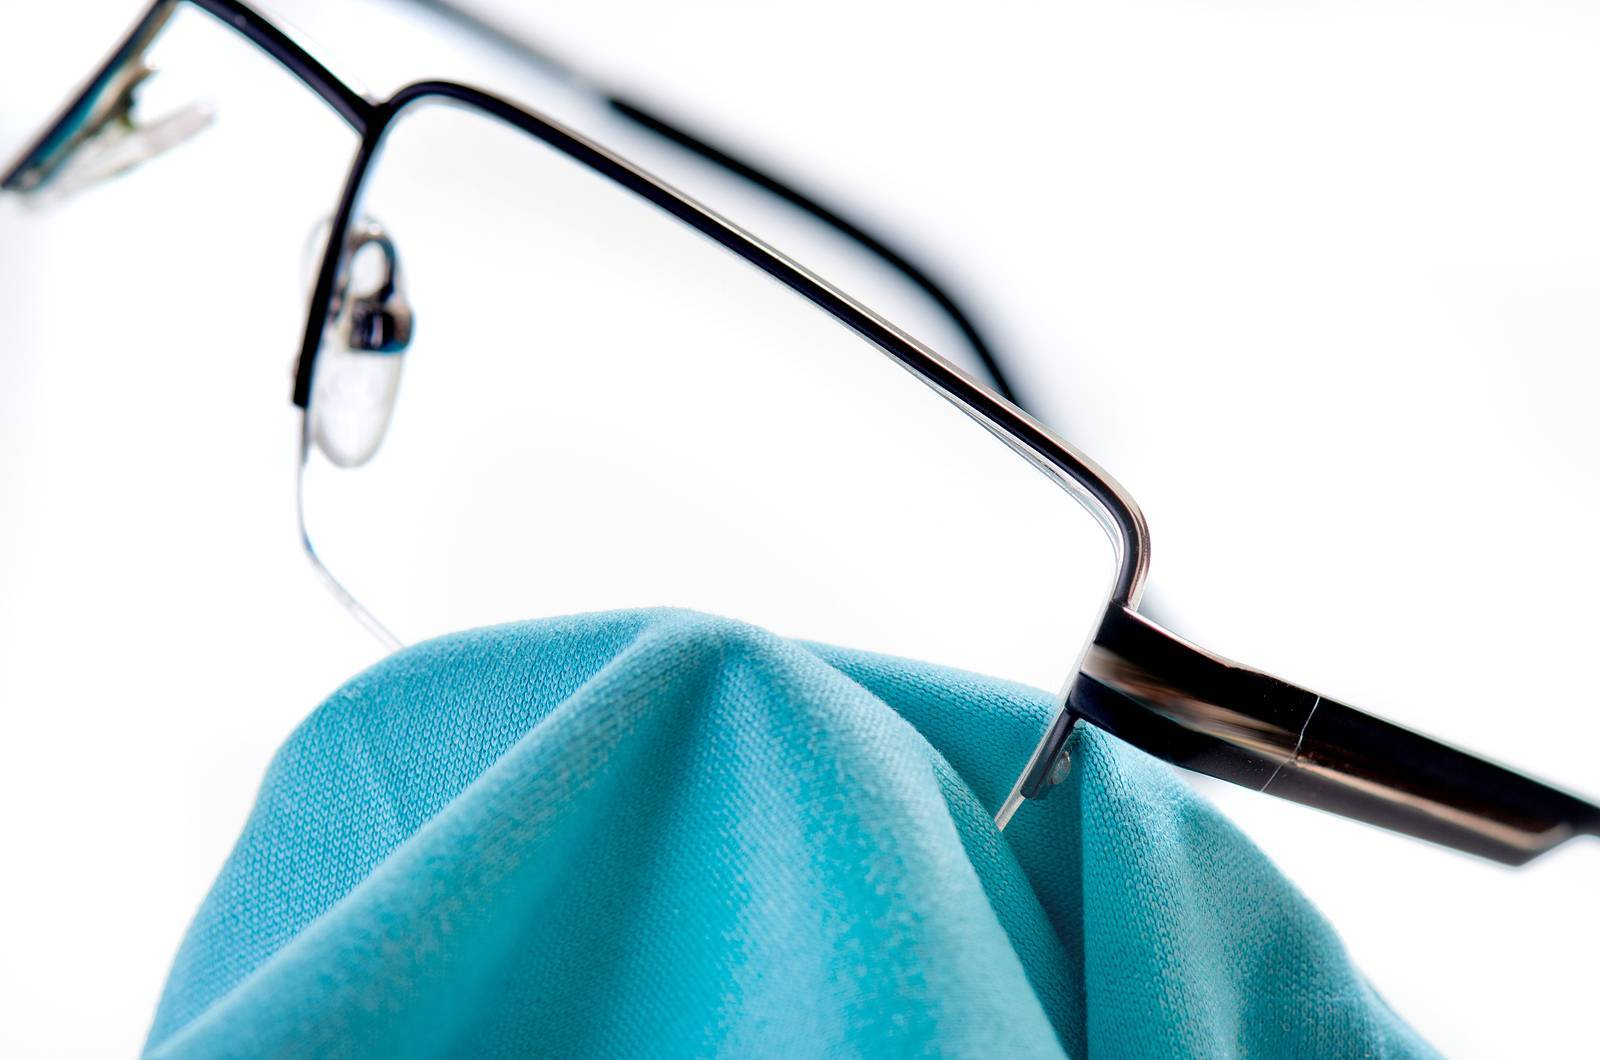 bigstock-Cleaning-glasses-112494173